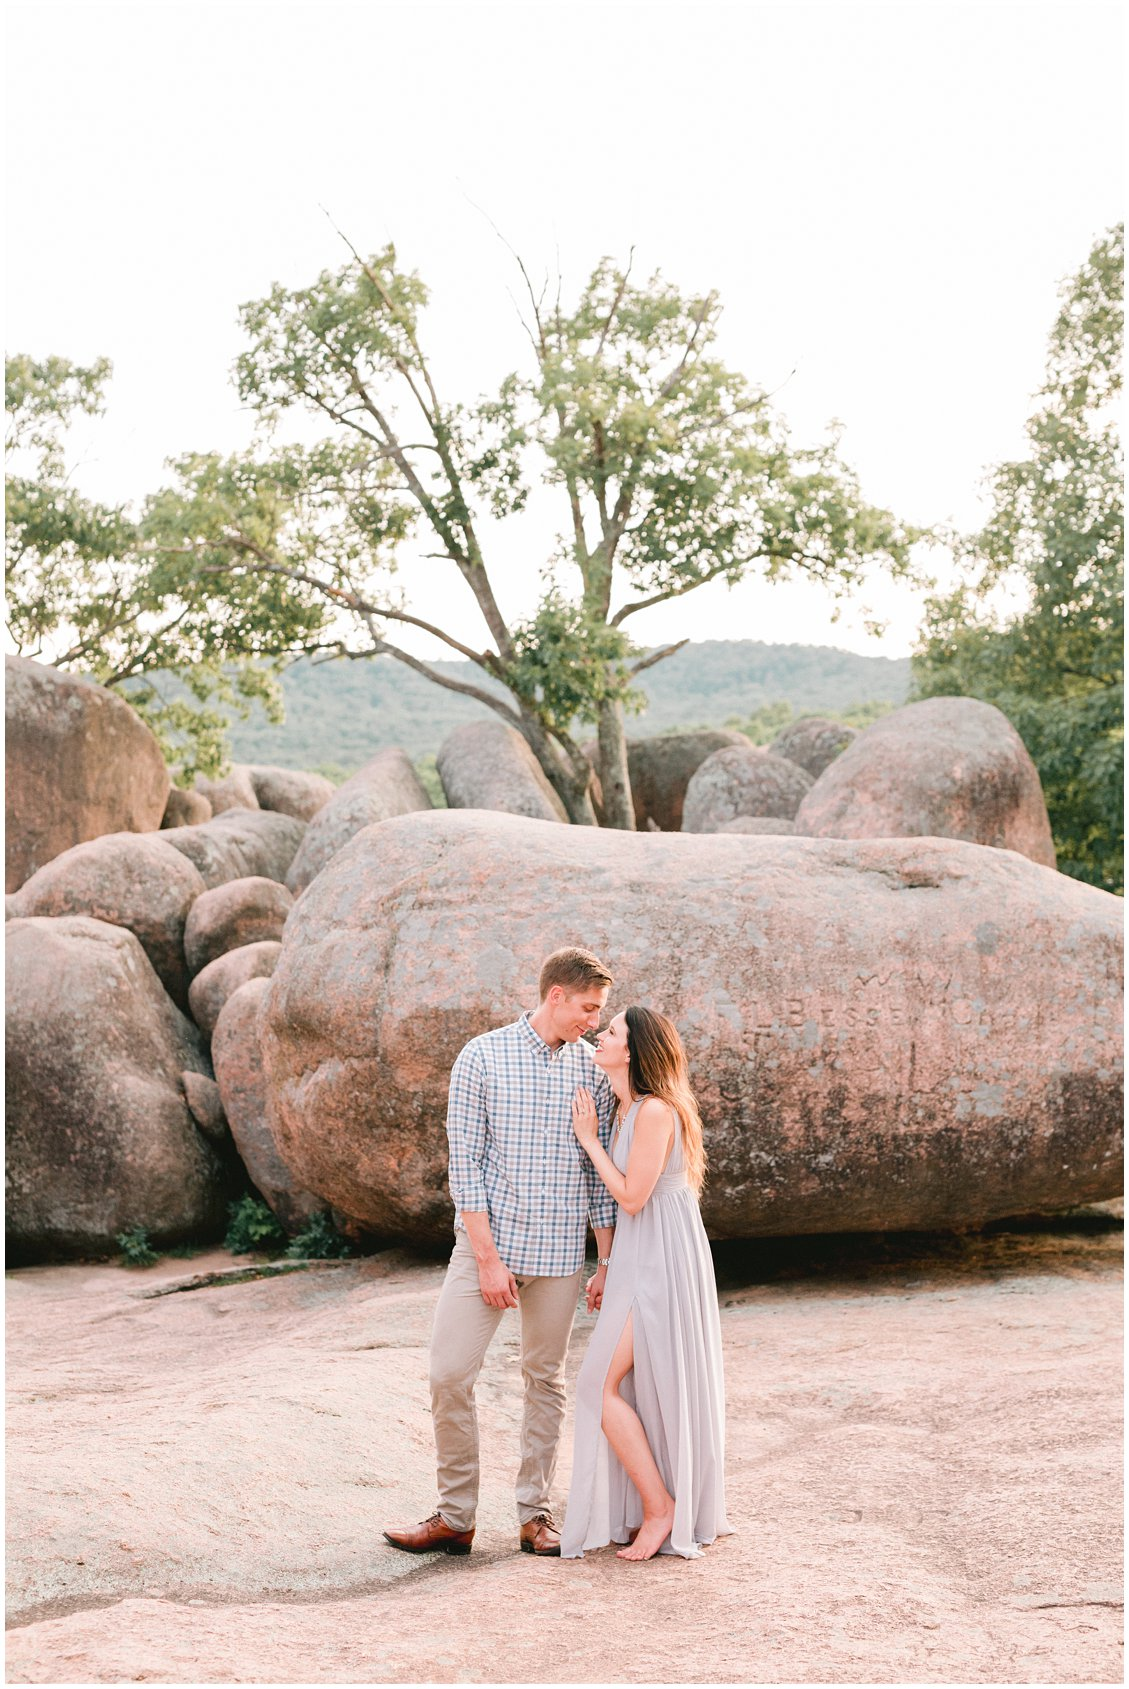 An Adventurous destination couples engagement session at Elephant Rock State Park in St Louis Missouri by Pattengale Photography